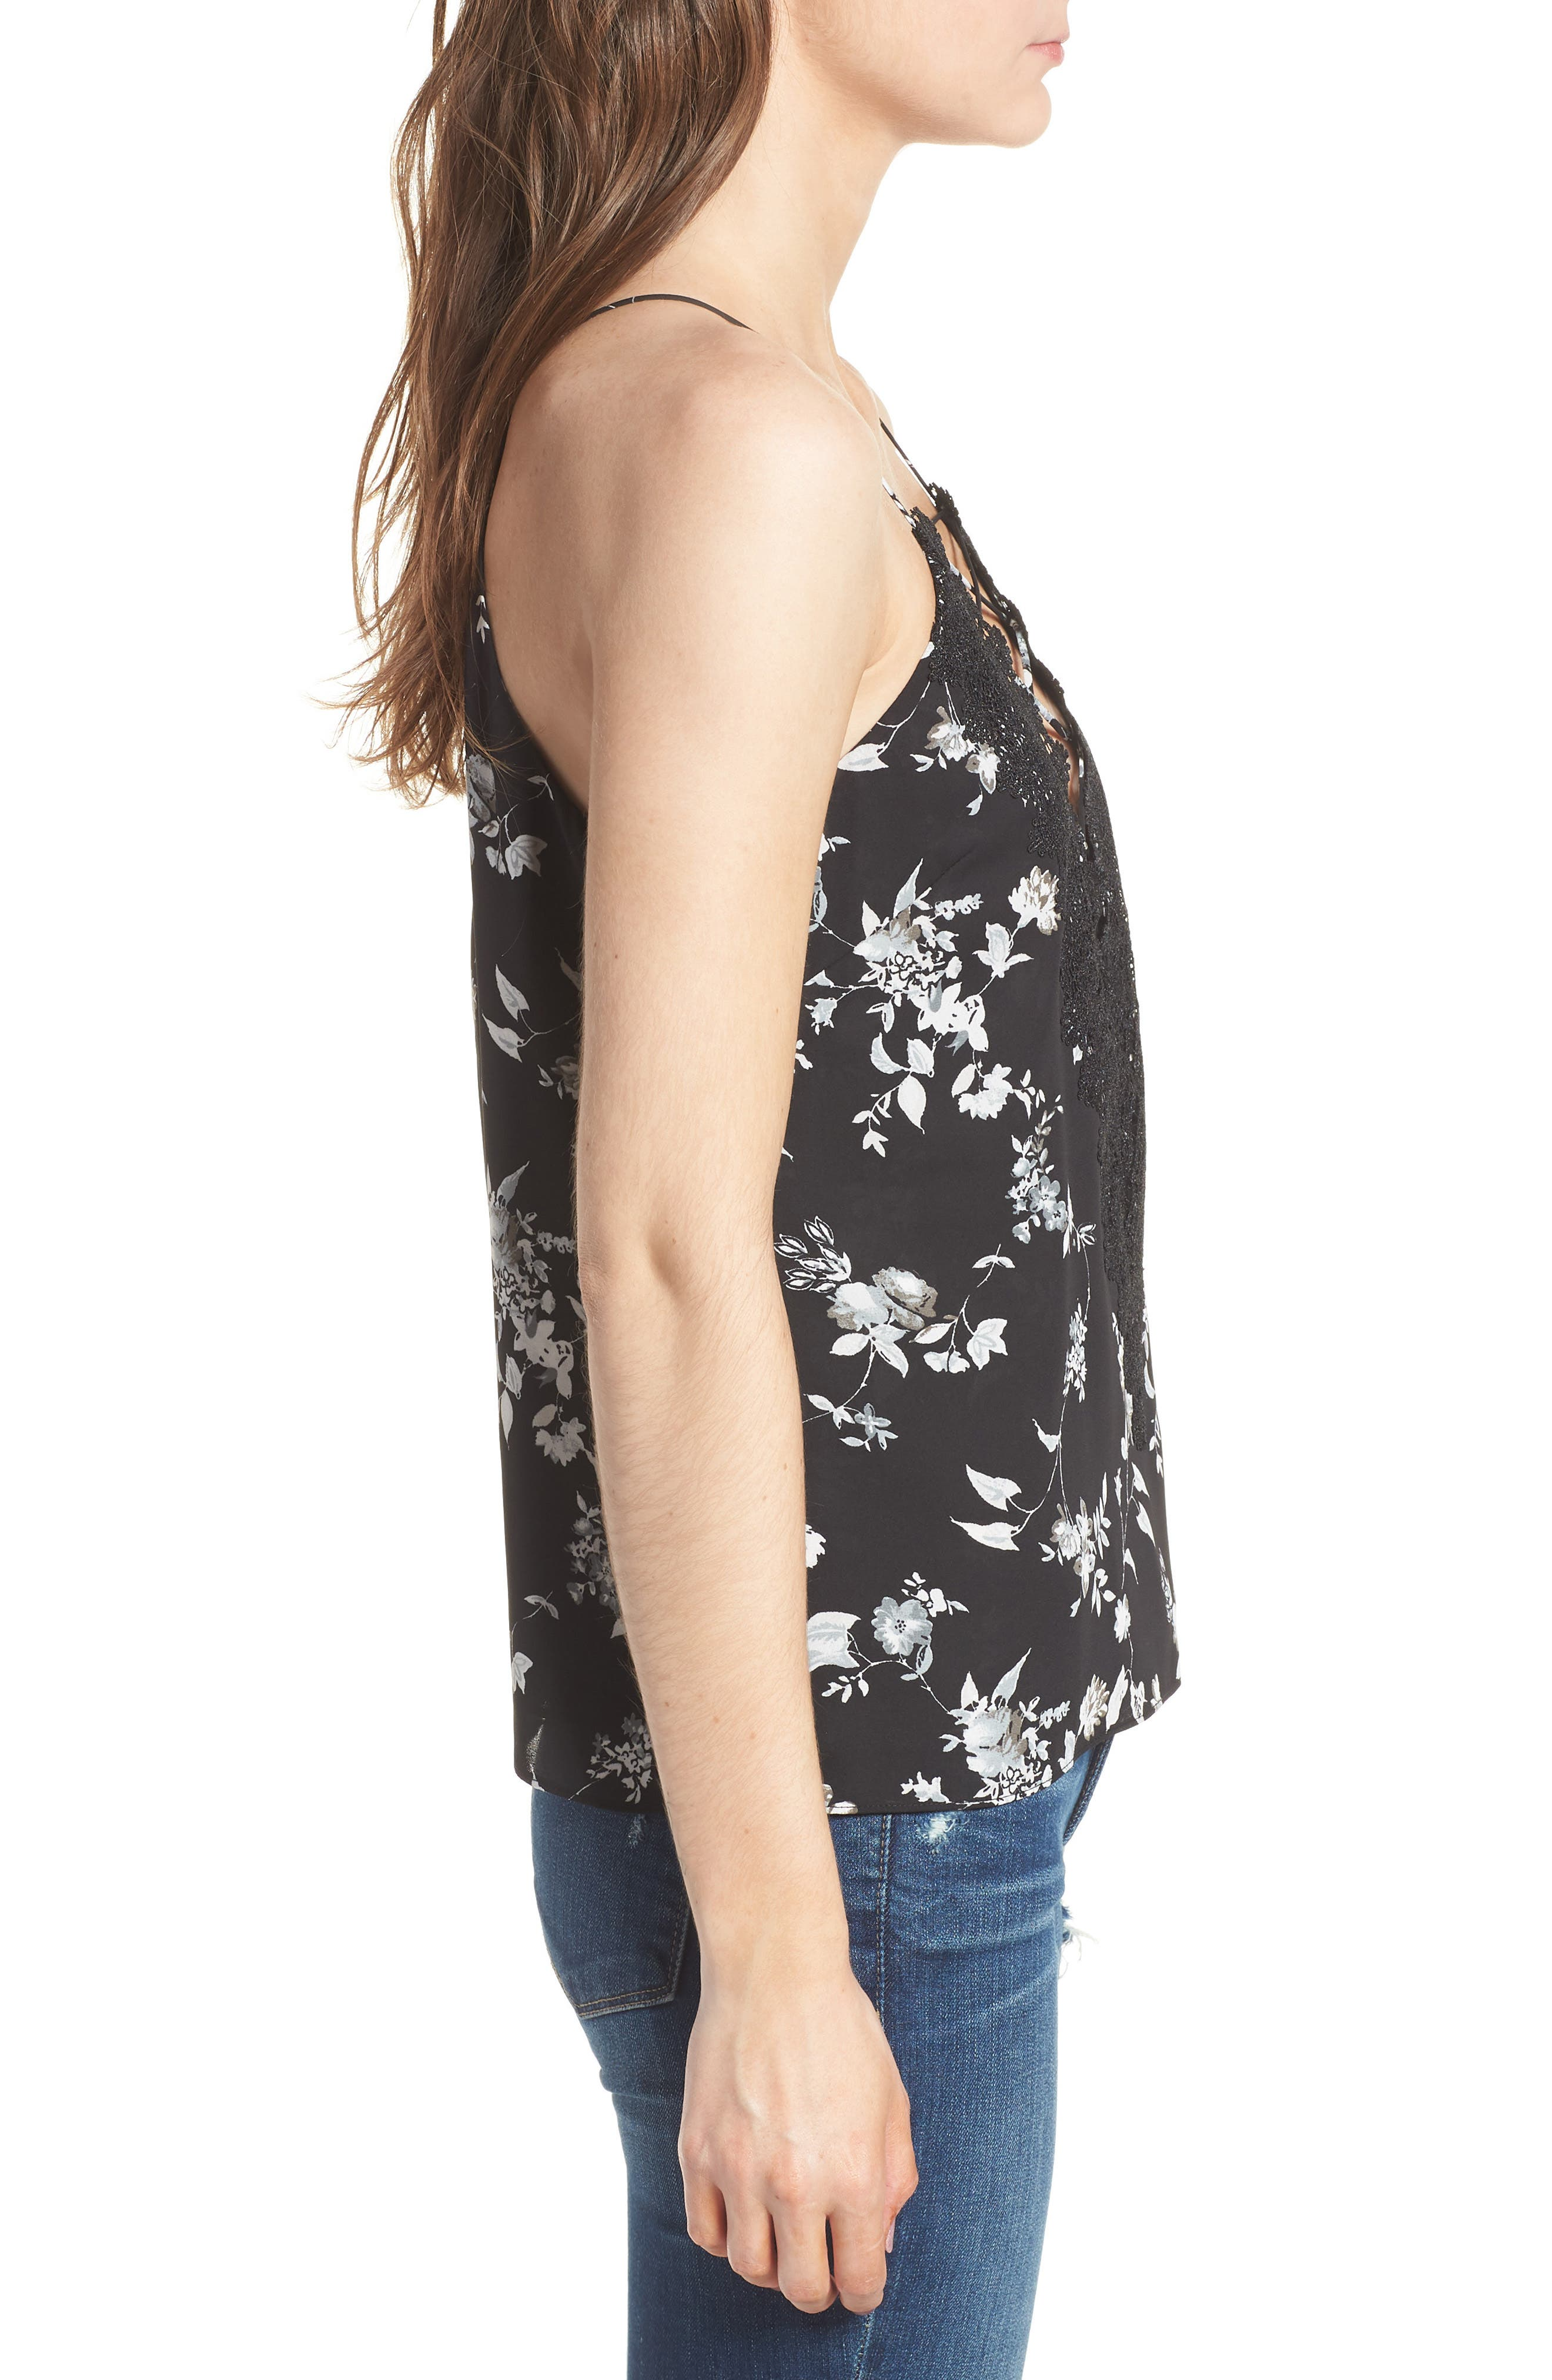 Posie Strappy Camisole,                             Alternate thumbnail 3, color,                             BLACK FLORAL